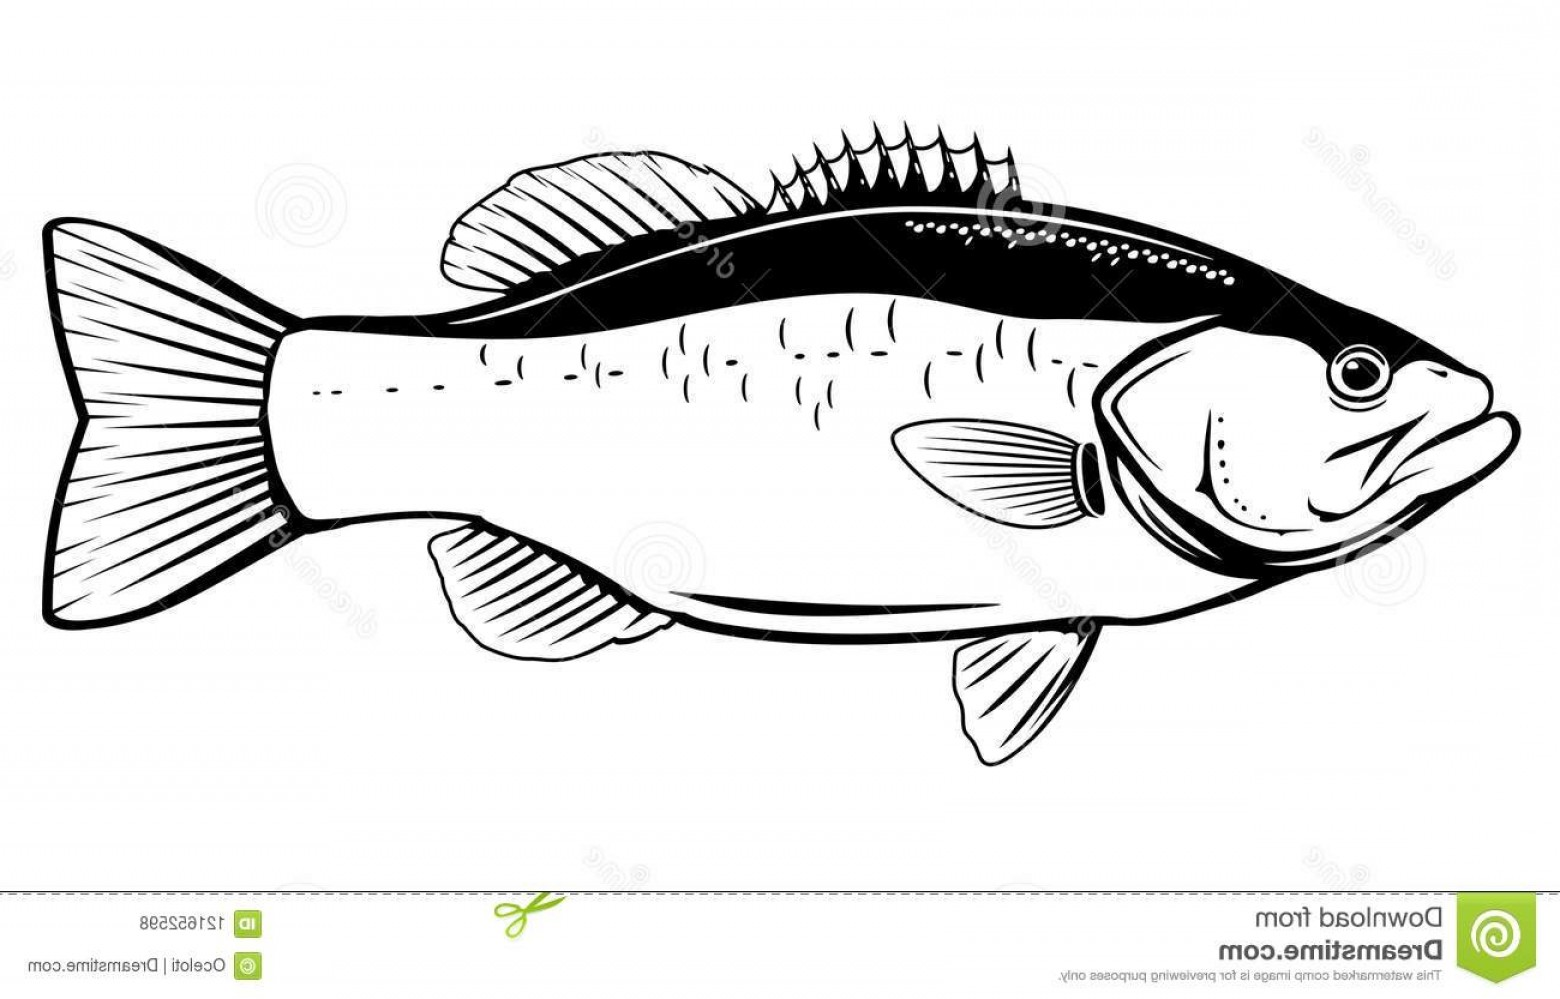 Largemouth Bass Silhouette Vector: Largemouth Bass Fish Side View Black White Color Isolated Largemouth Bass Fish Image